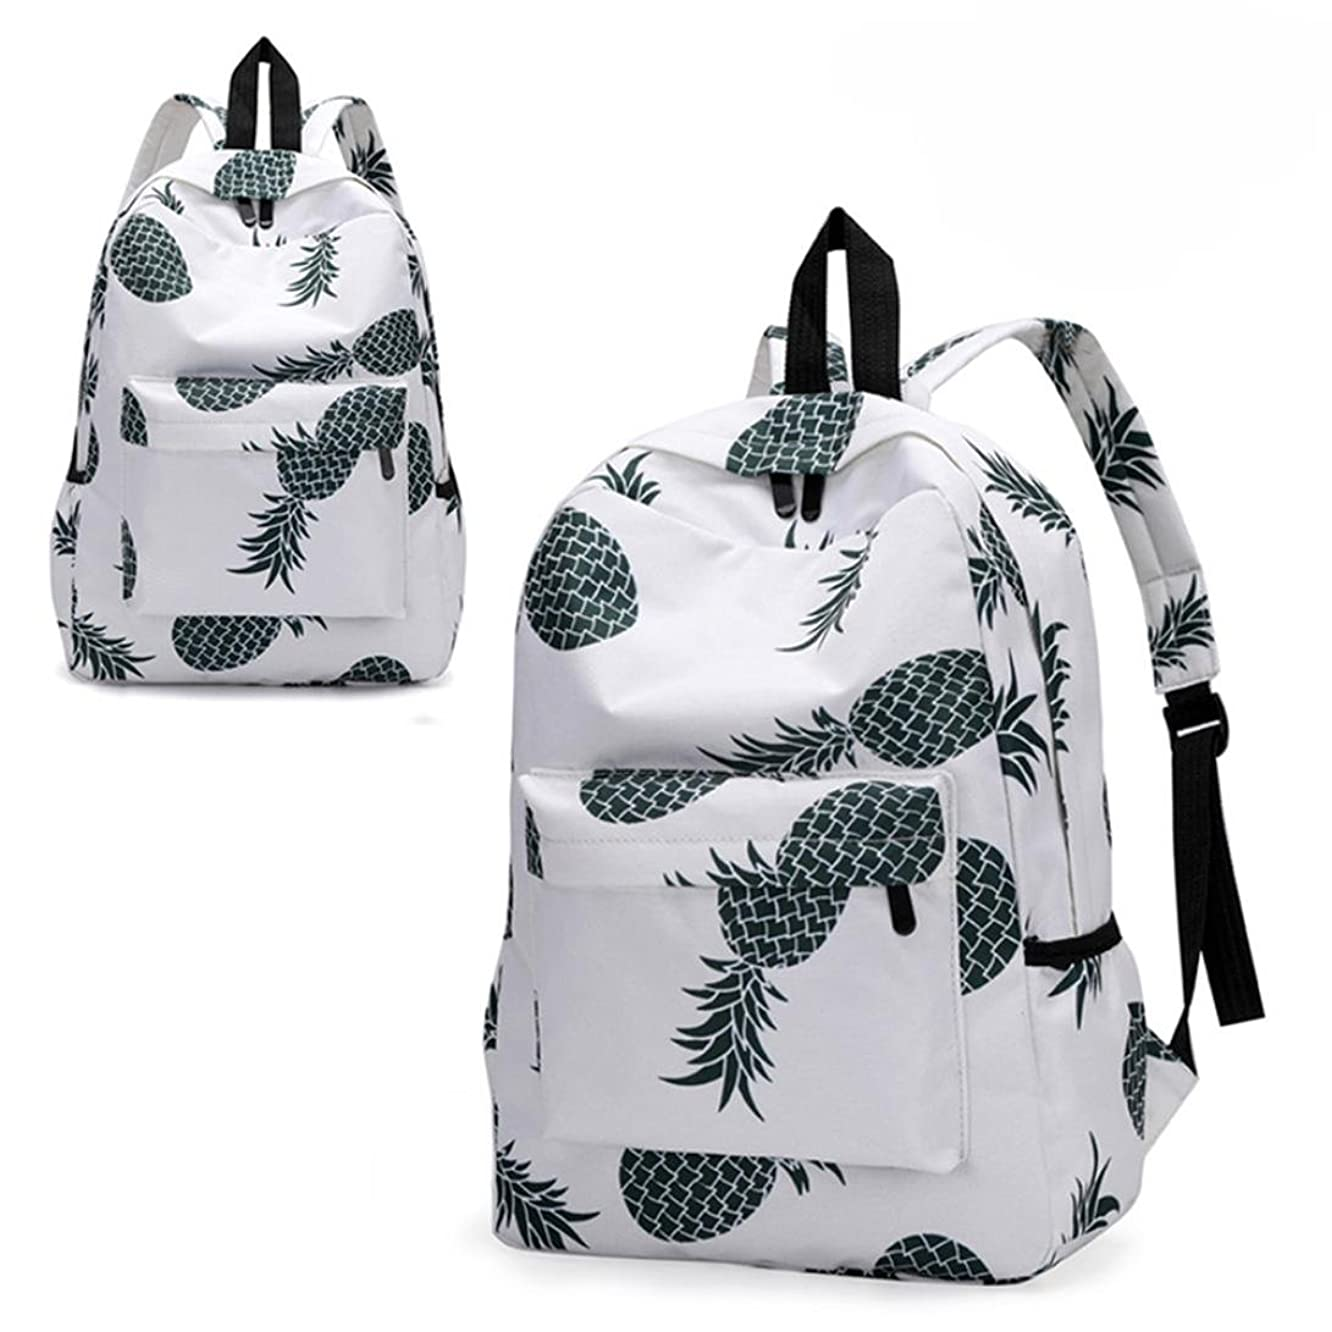 Transer Women Teenage Girls Floral Print School Bags Bookbags Travel Backpack (B-A)